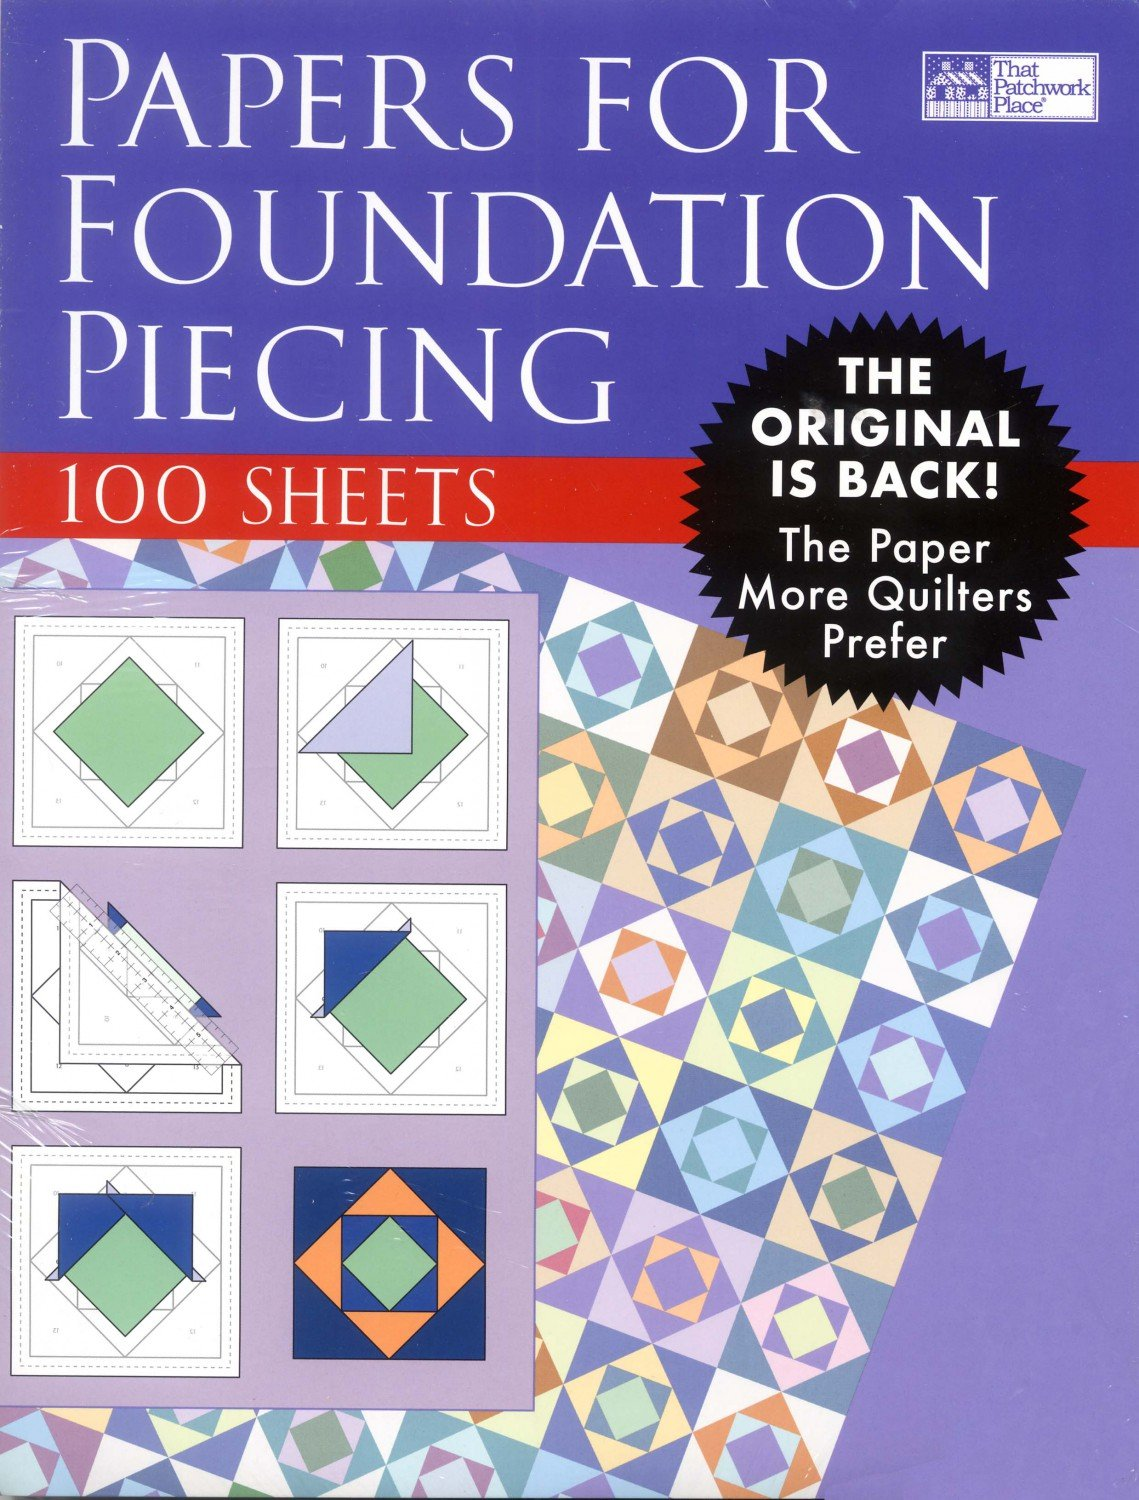 Papers for Foundation Piecing - 100 Sheets